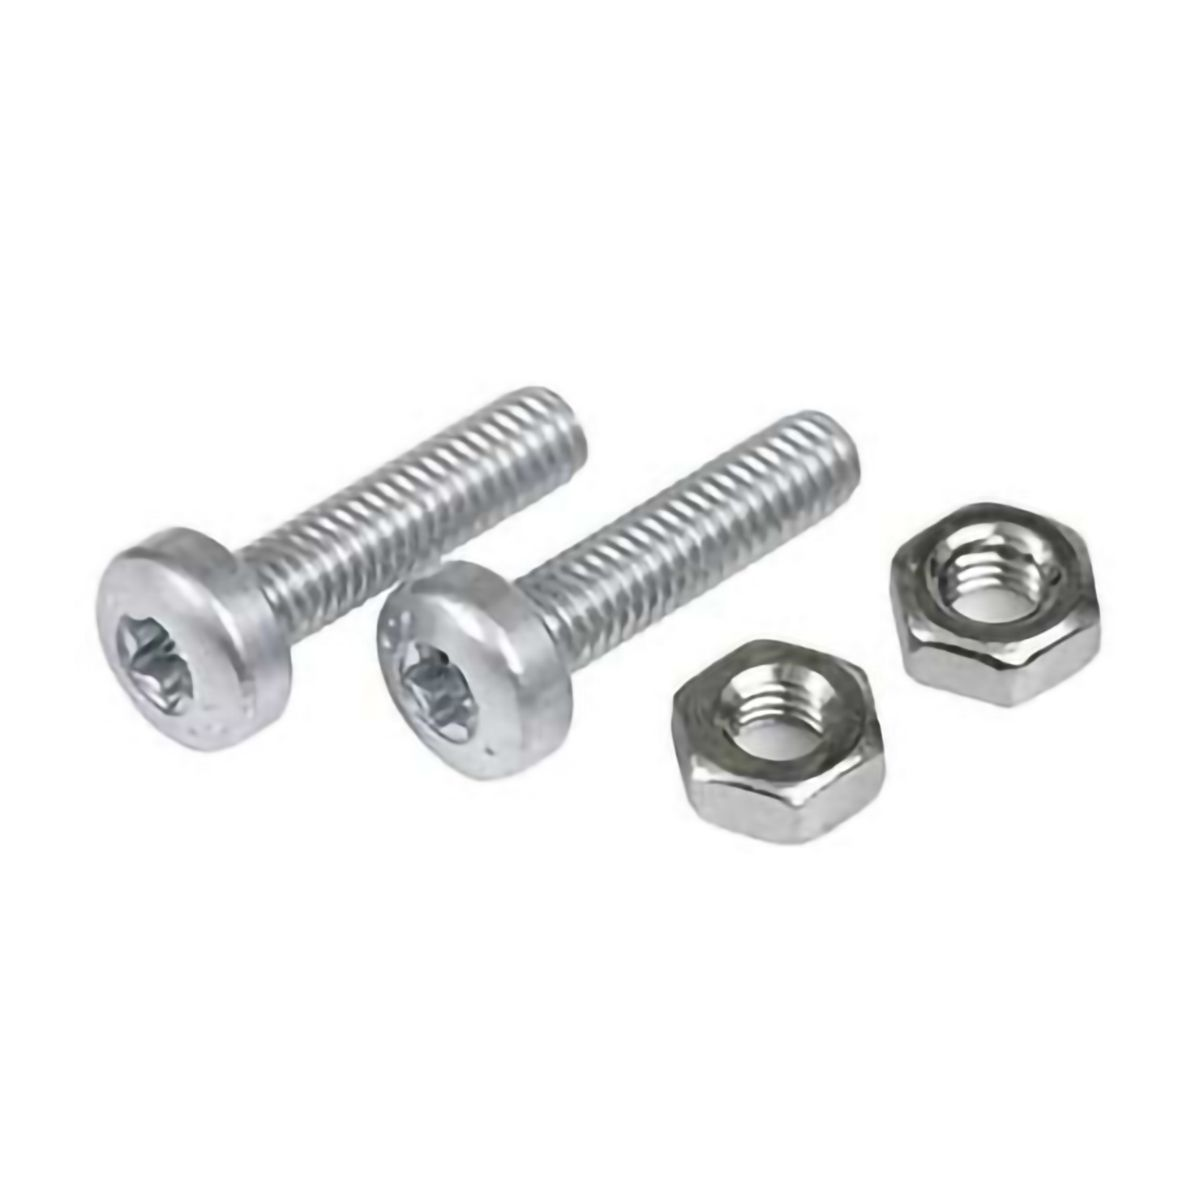 Bosch lock screw kit for frame-mounted e-bike battery | Computer Battery and Charger